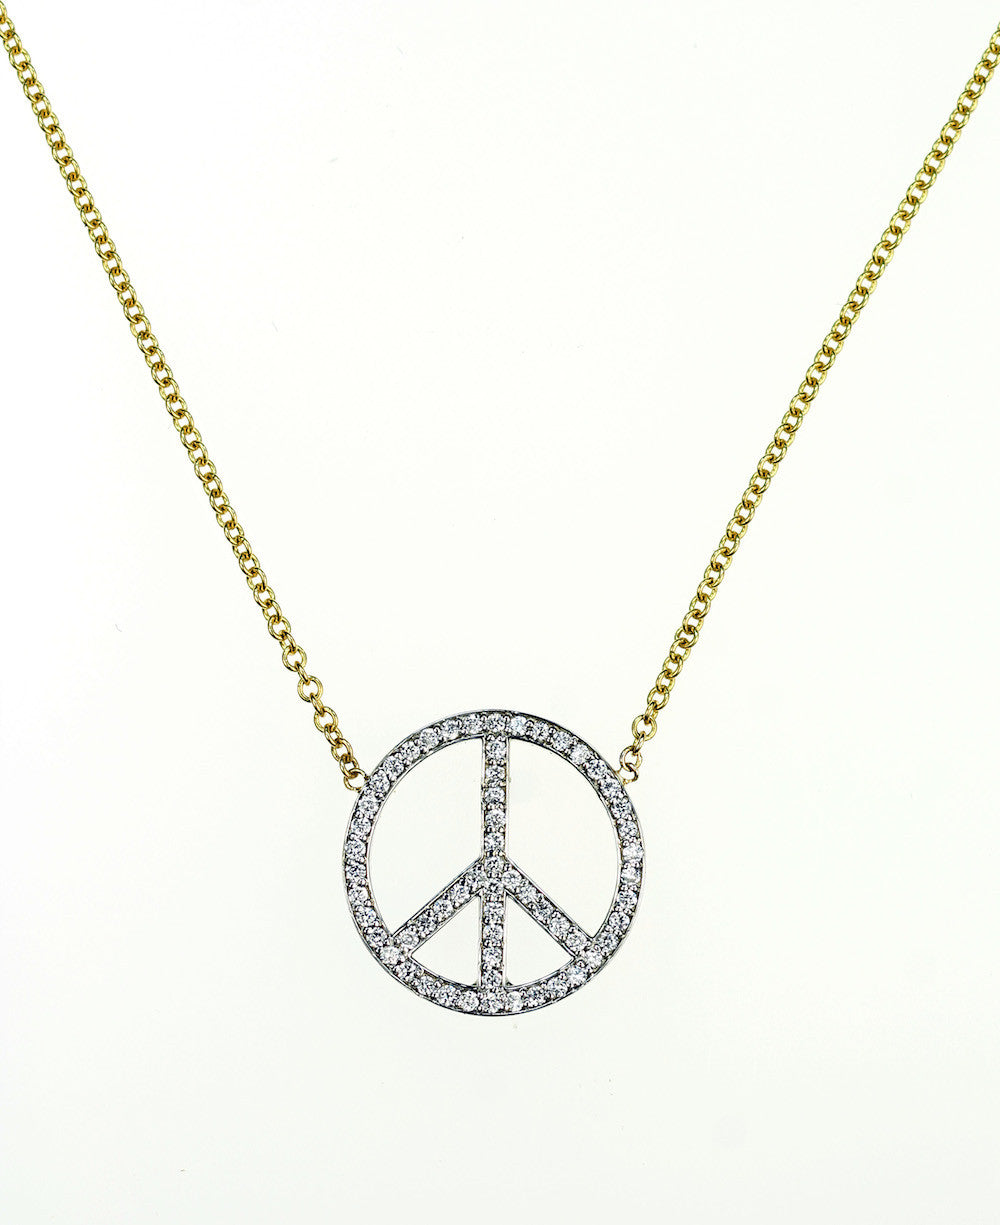 Janet Deleuse Designer Peace Sign Necklace